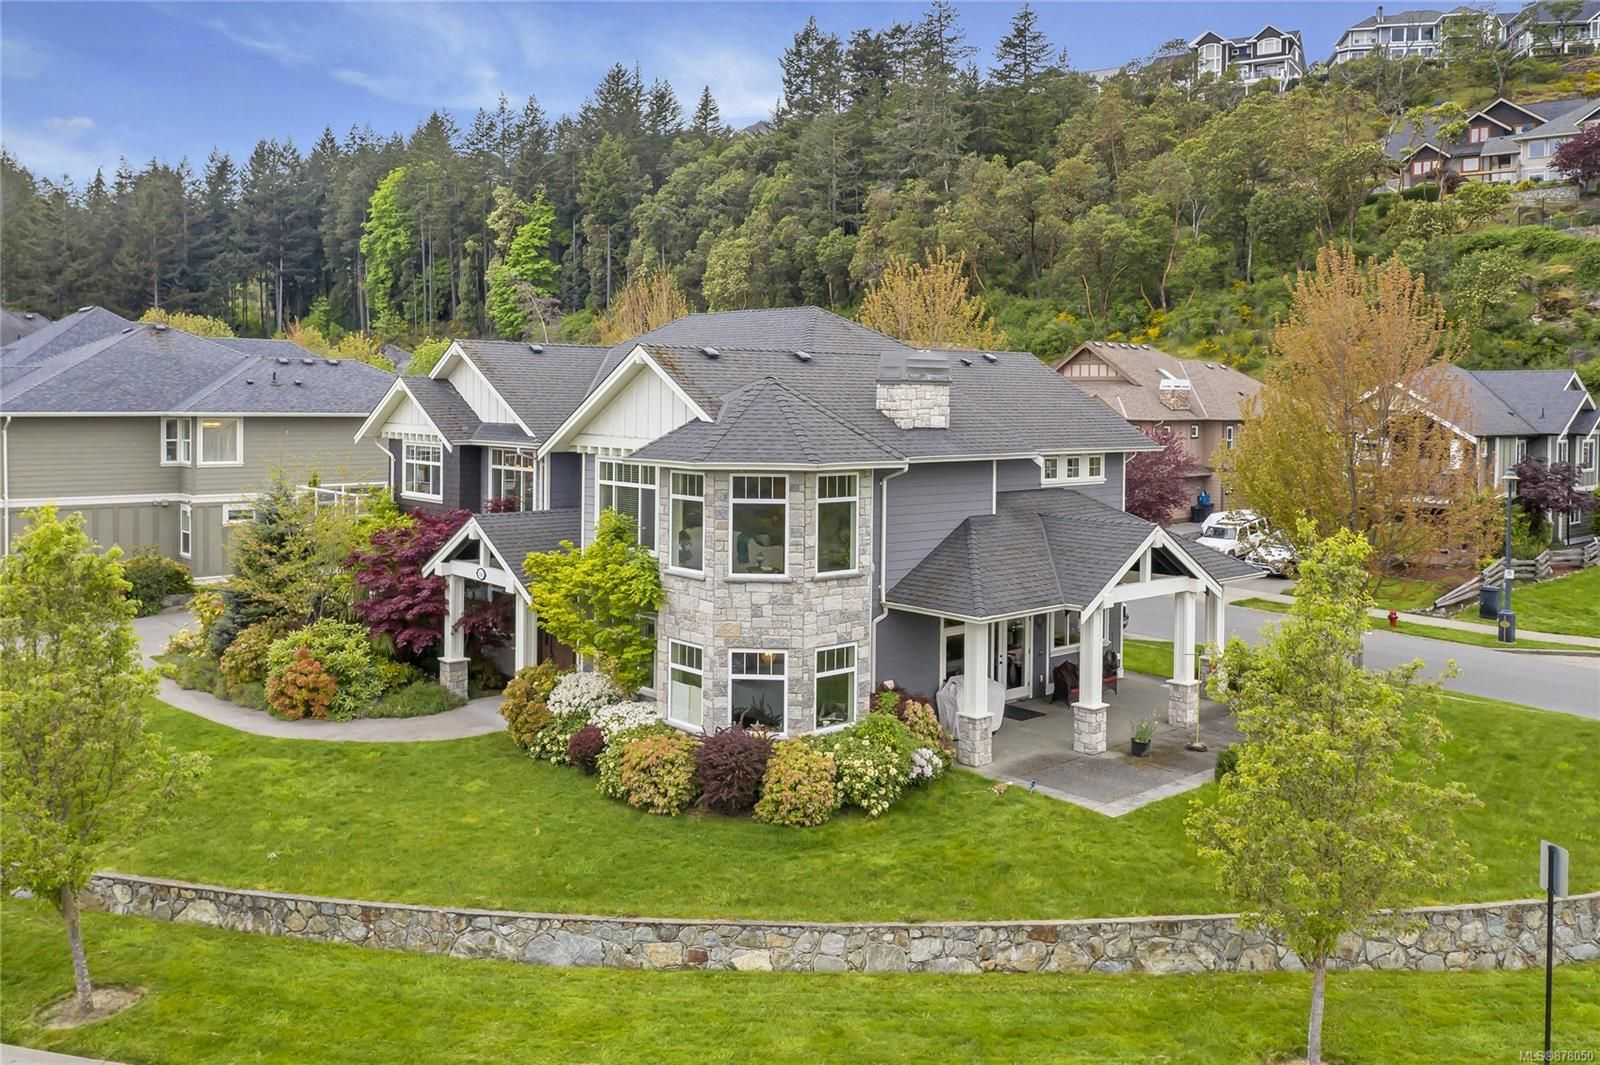 Main Photo: 2142 Blue Grouse Plat in : La Bear Mountain House for sale (Langford)  : MLS®# 878050